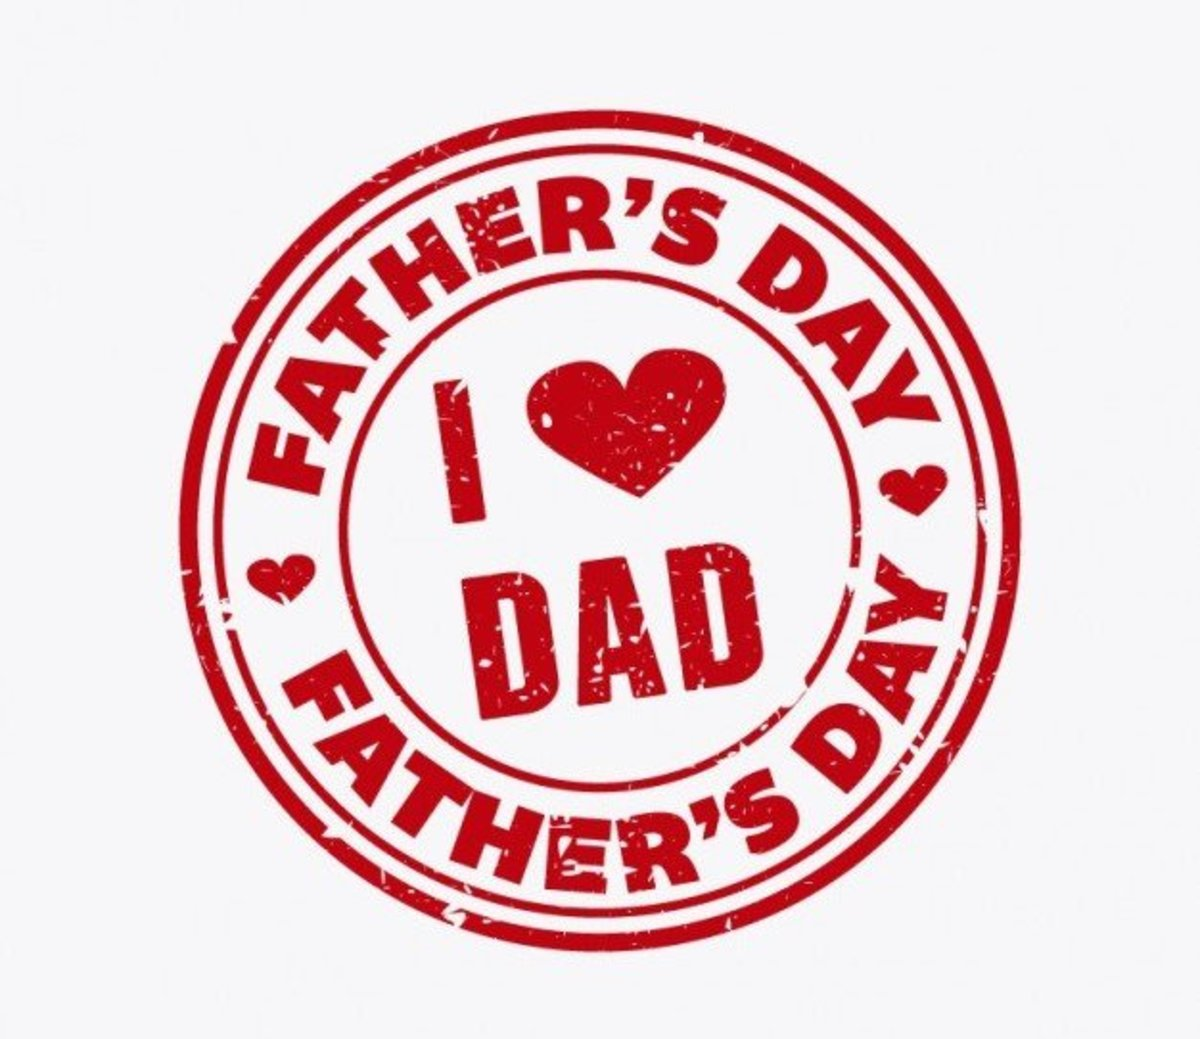 Father's Day 'I ♥ Dad' Seal